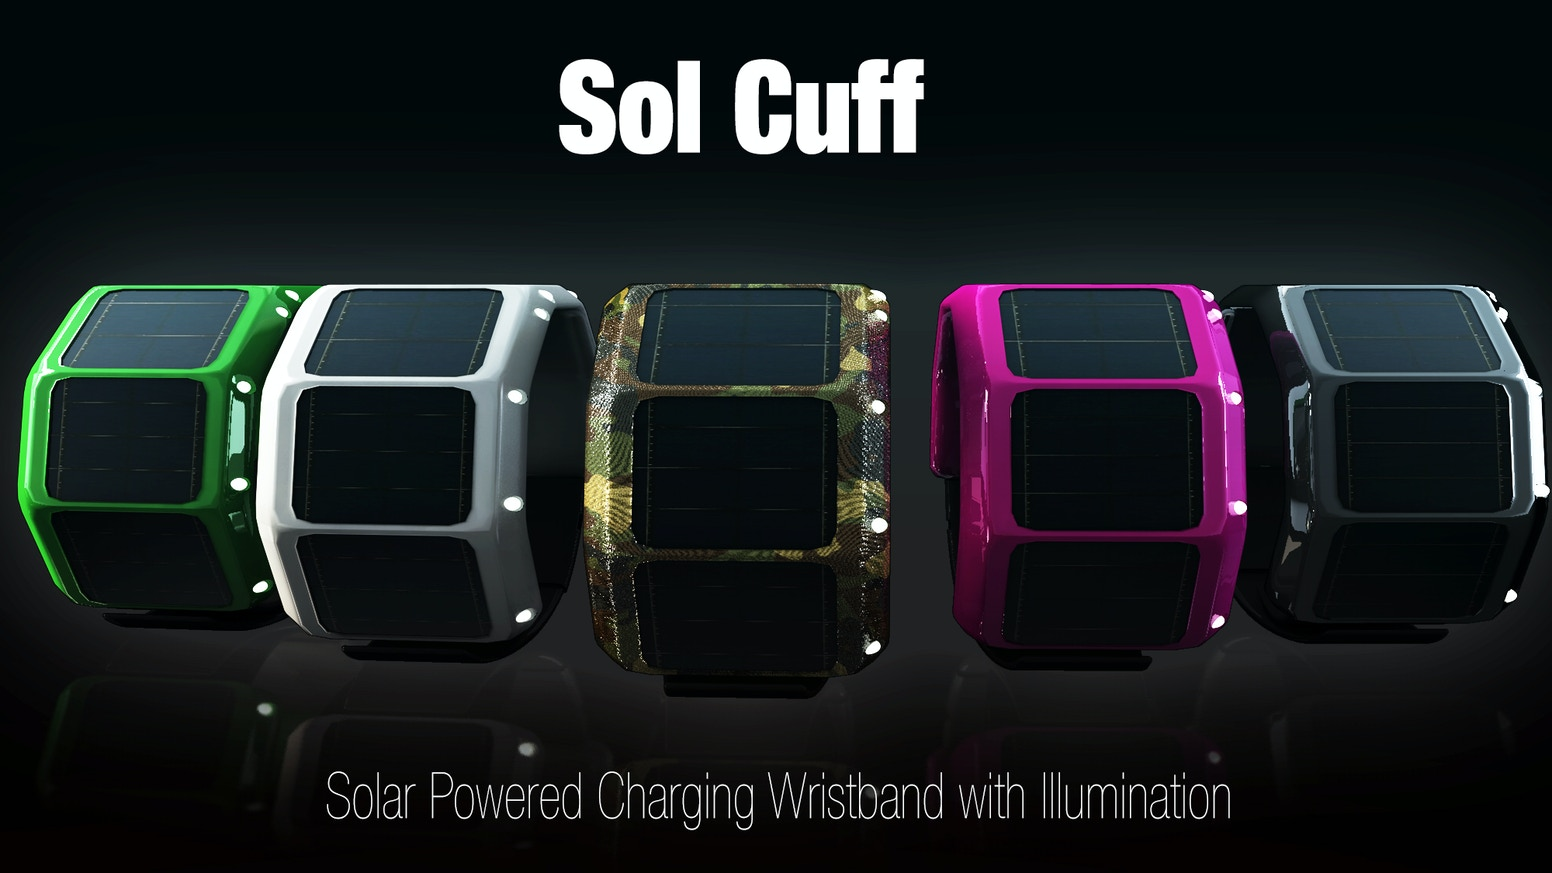 Sol Cuff Solar Powered Charging Wristband With